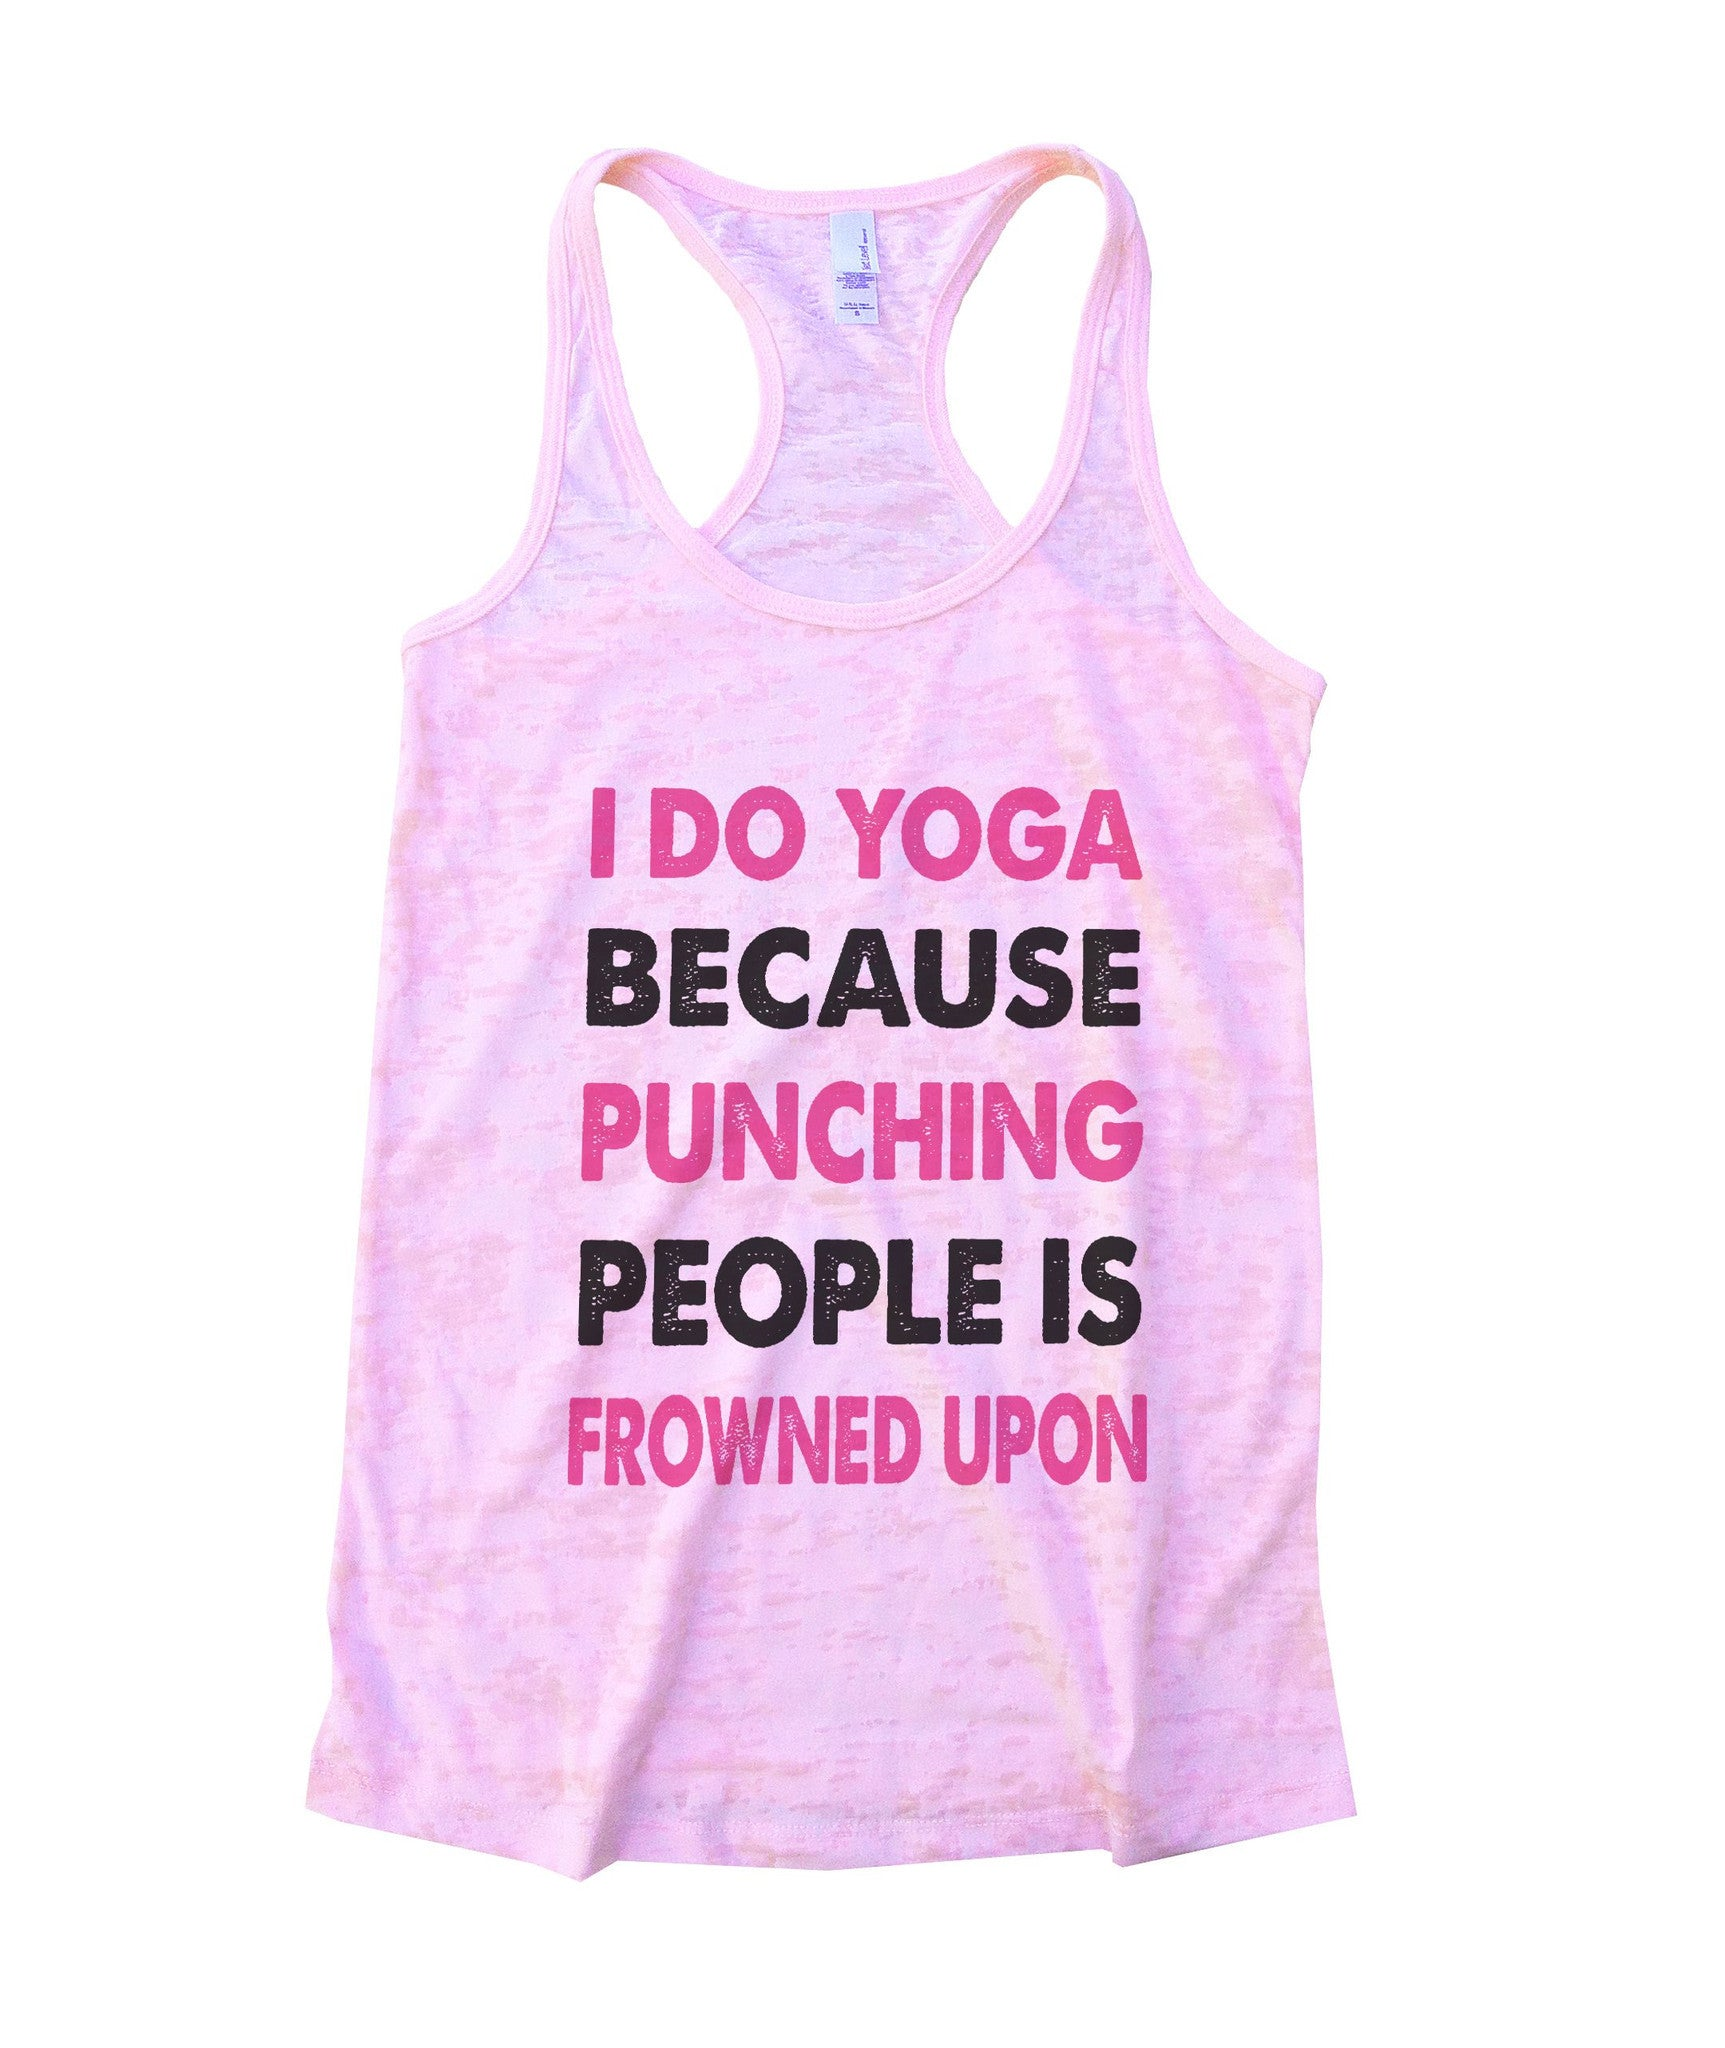 I Do Yoga Because Punching People Is Frowned Upon Burnout Tank Top By BurnoutTankTops.com - 685 - Funny Shirts Tank Tops Burnouts and Triblends  - 2